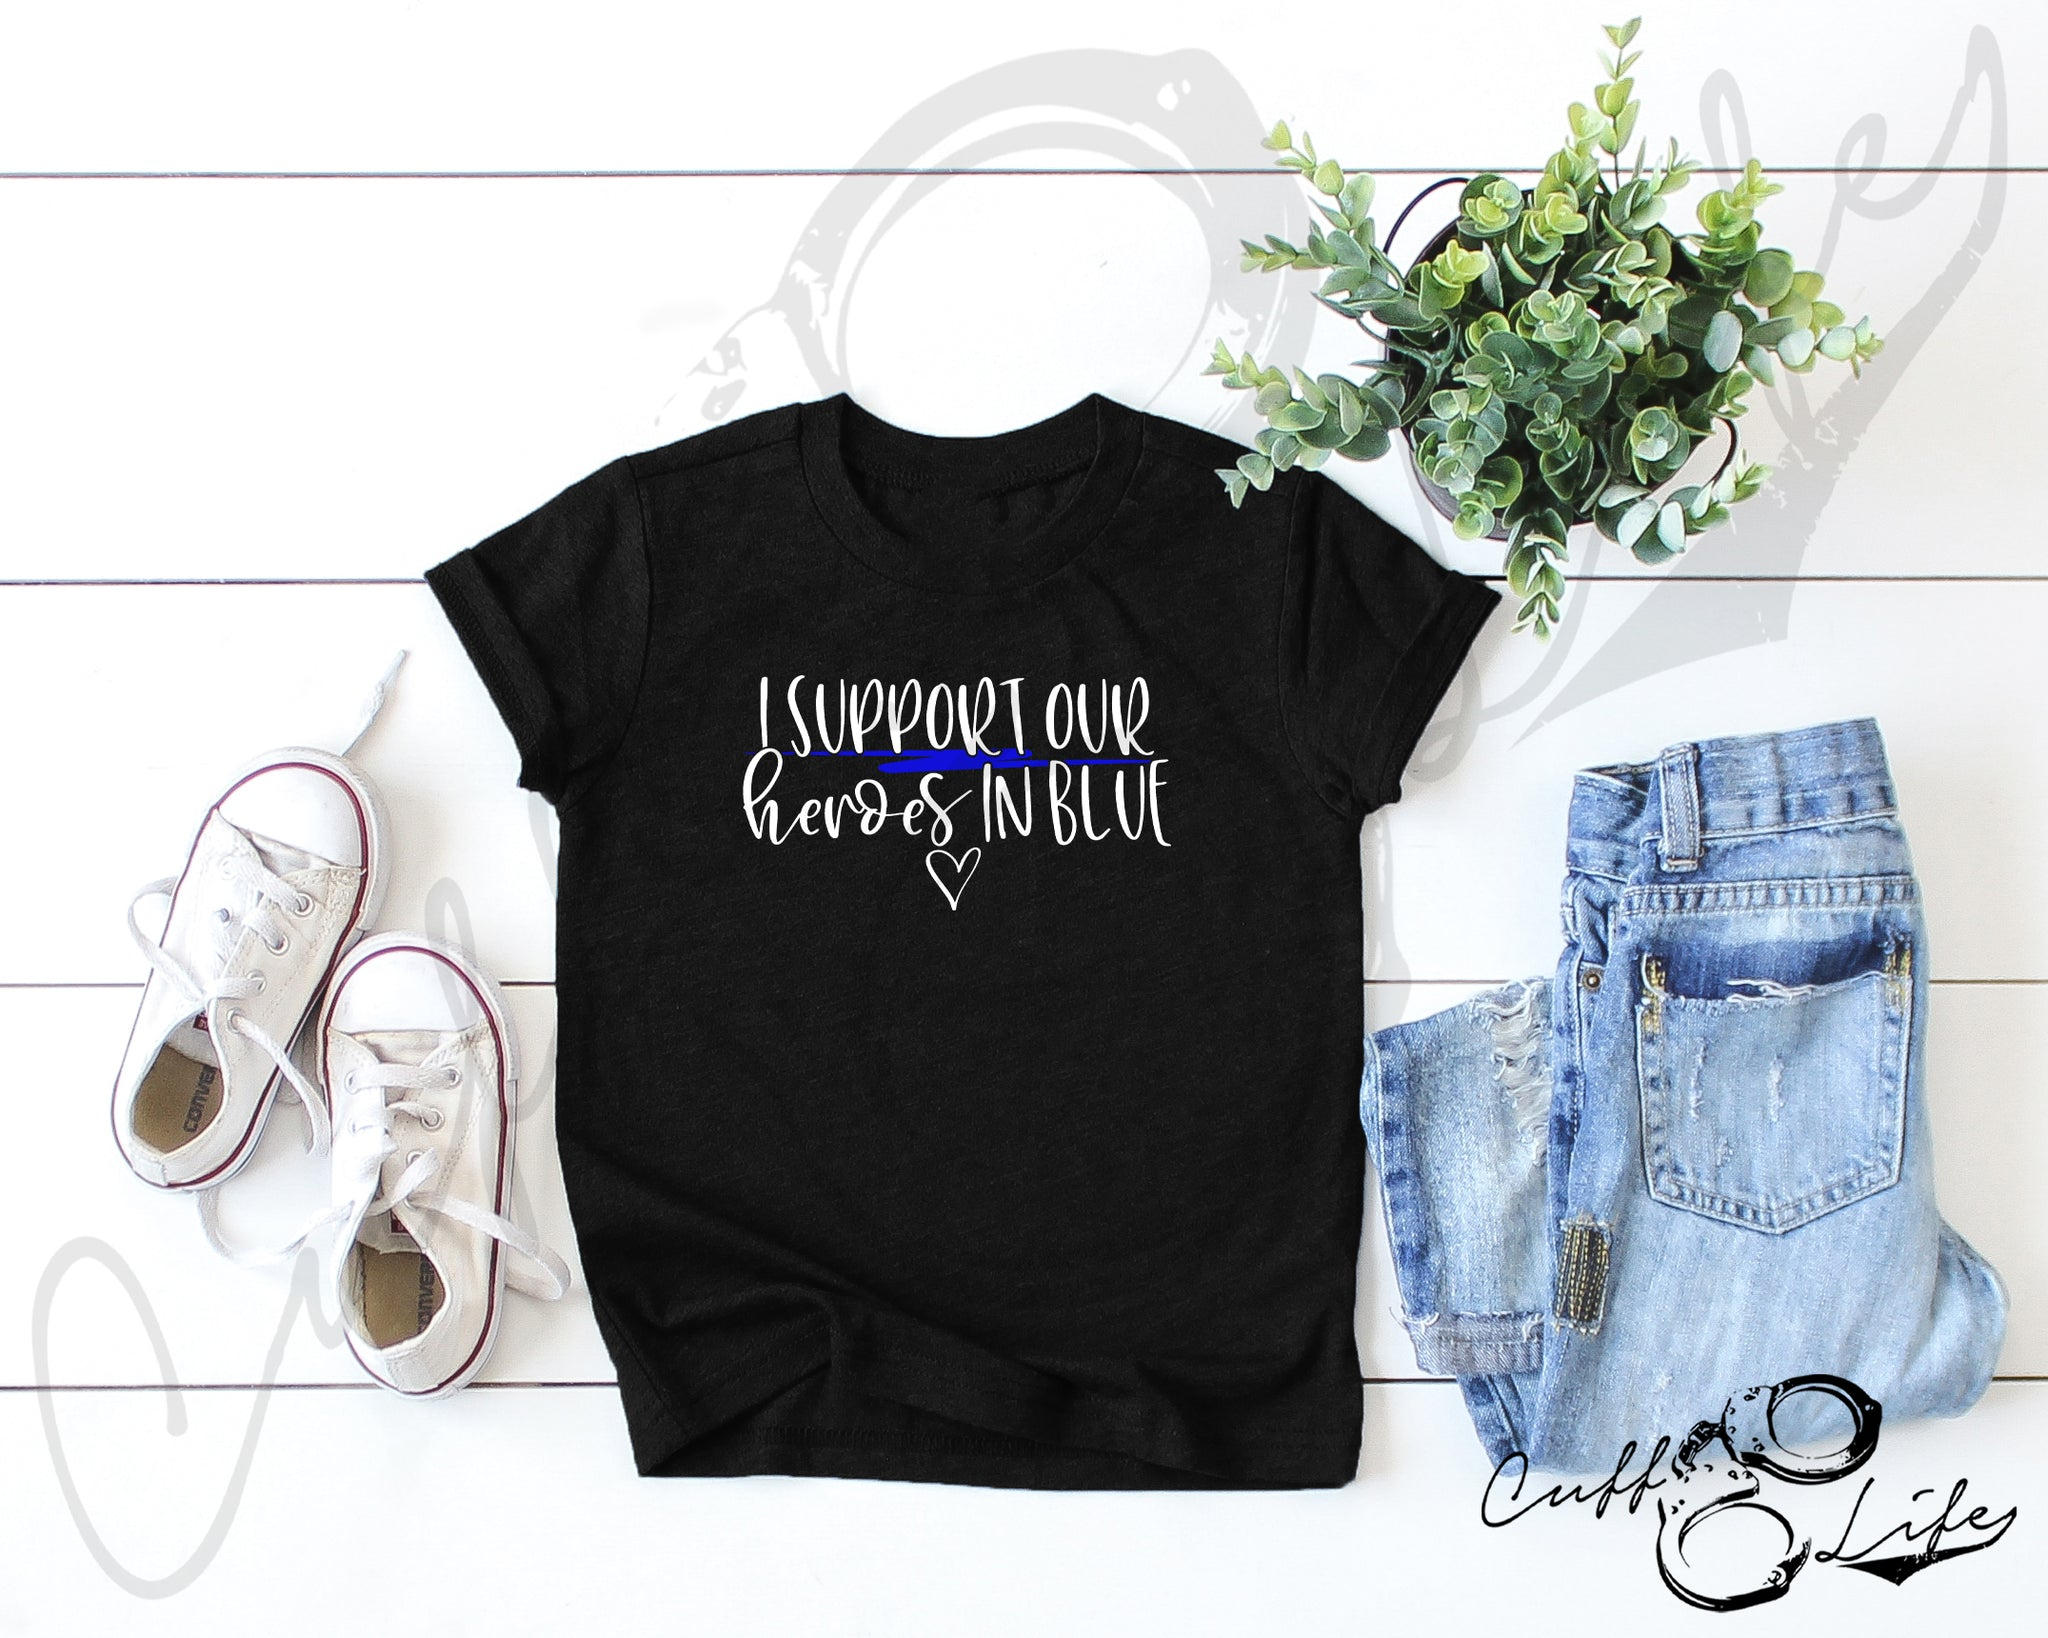 I Support Our Heroes in Blue © - Toddler/Youth T-Shirt